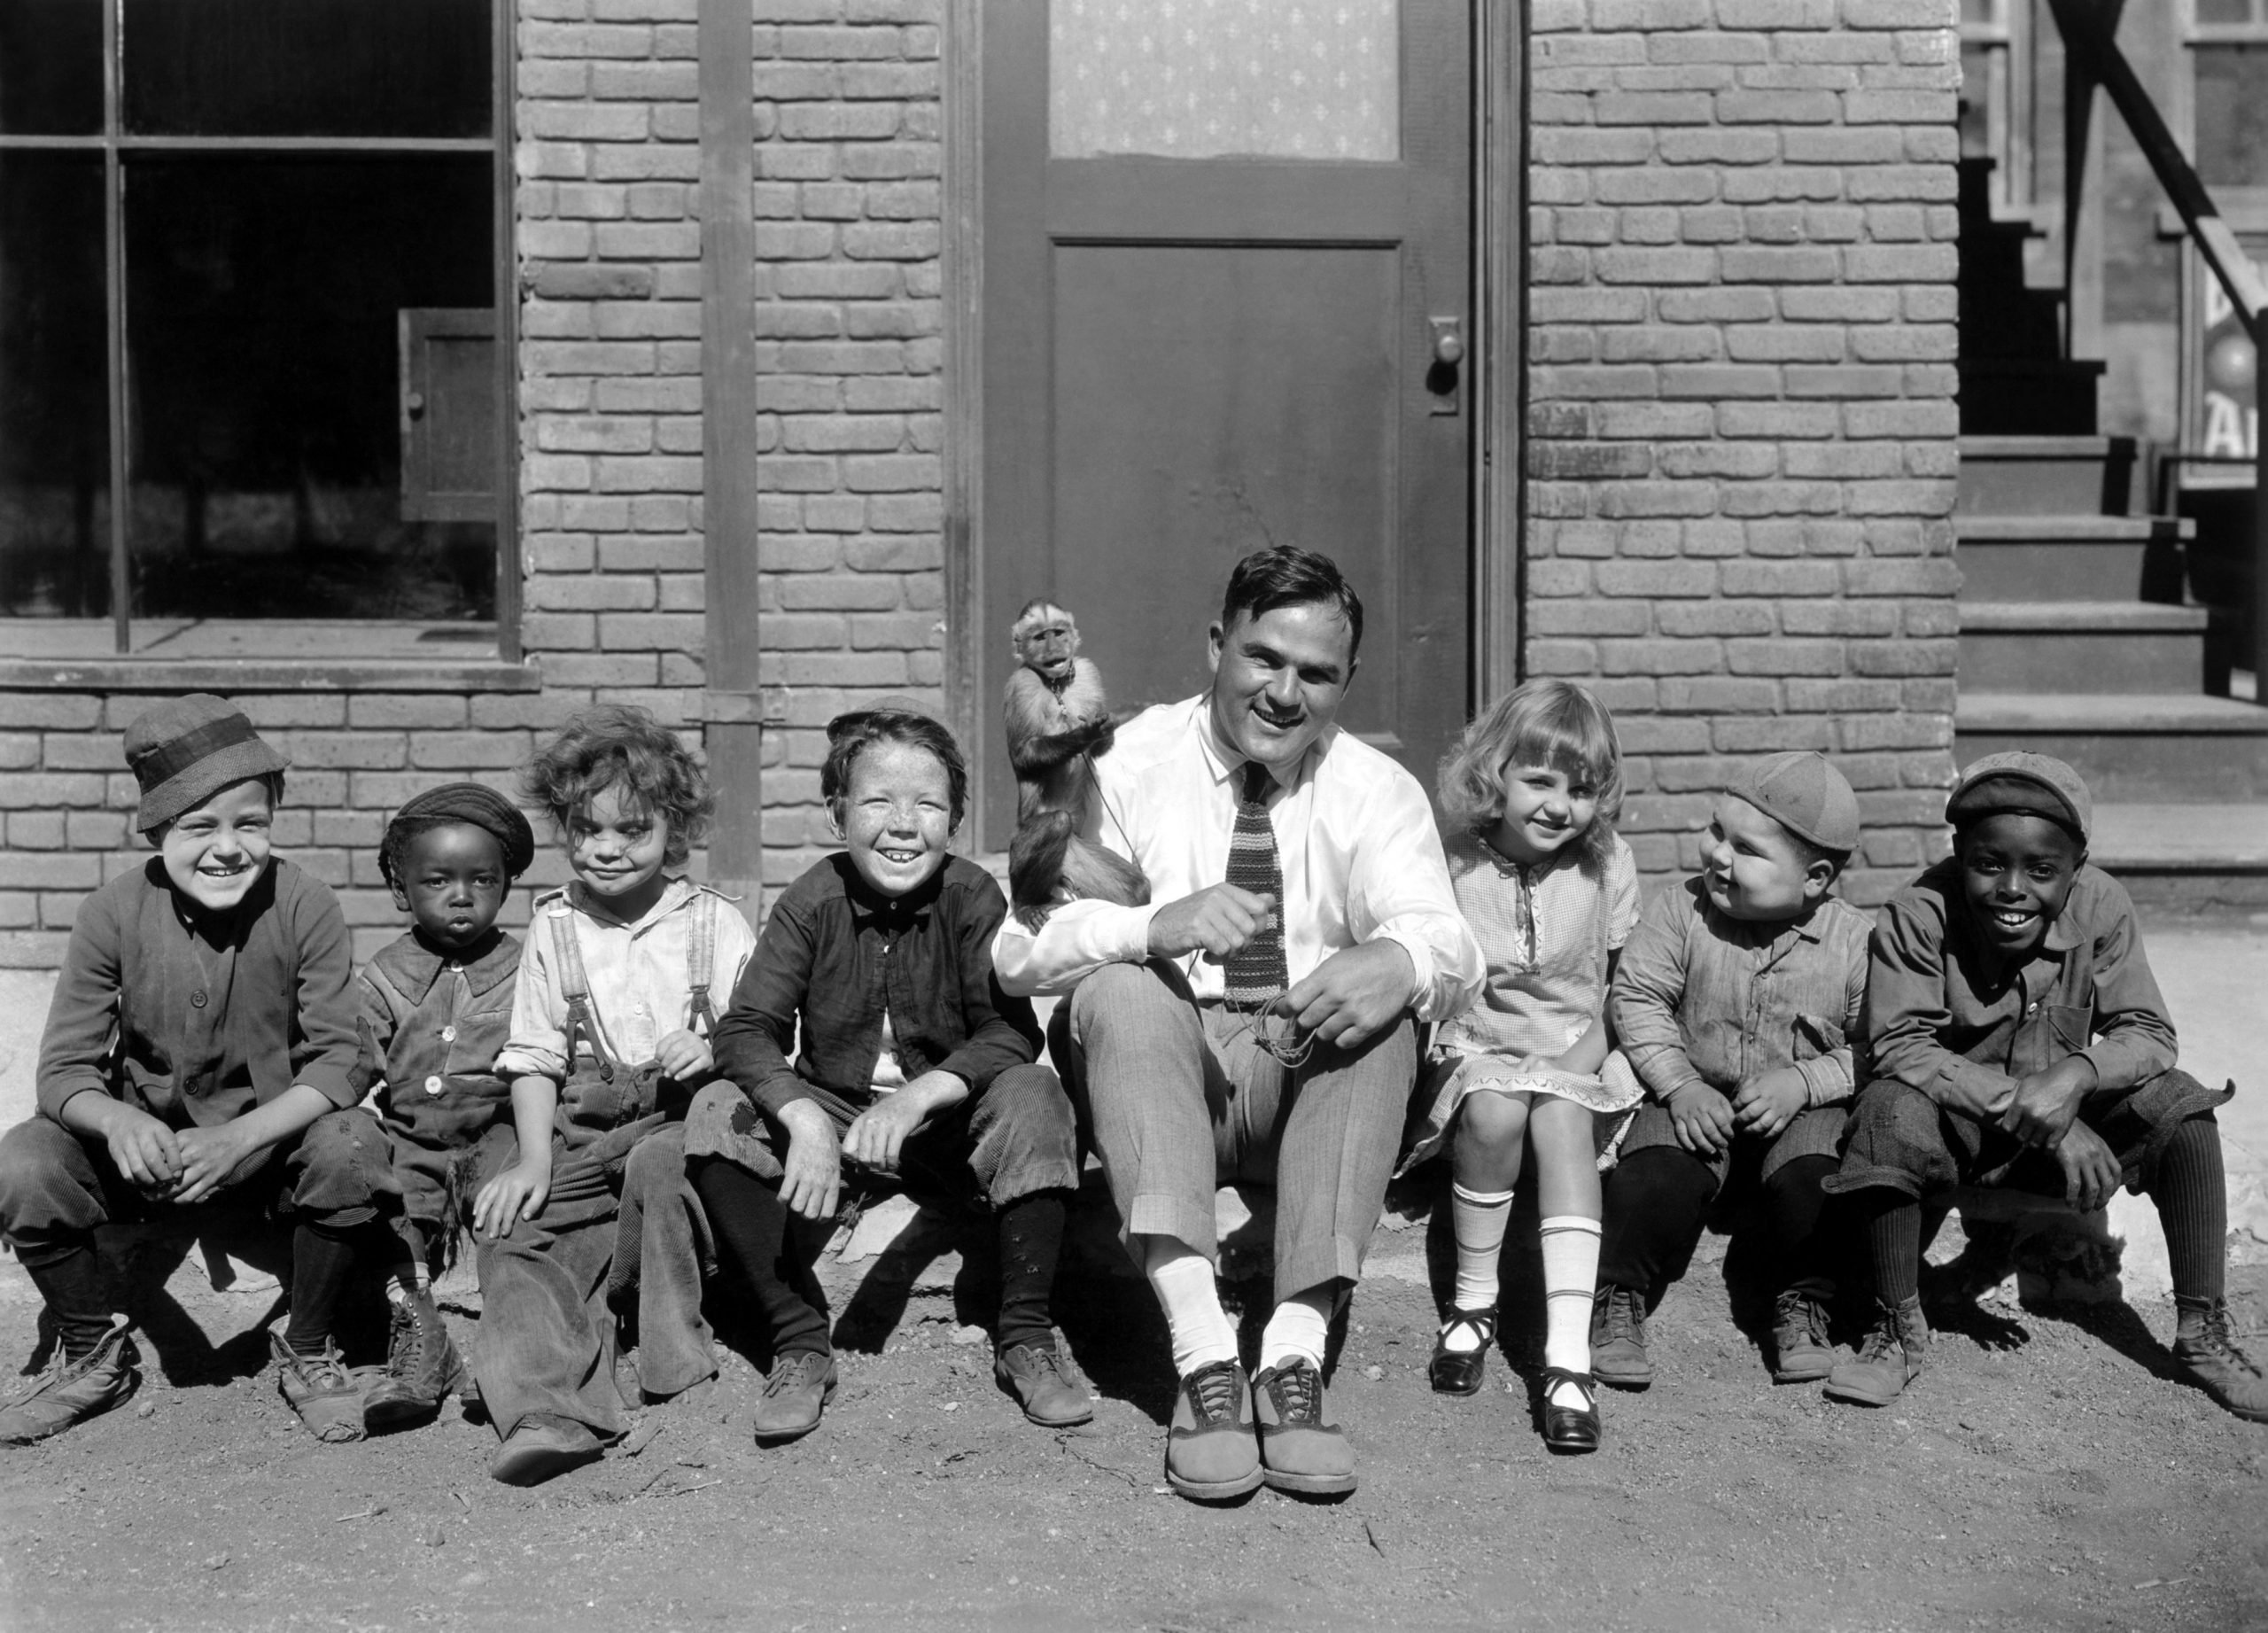 mickey-daniels-hal-roach-and-little-rascals-cast-members